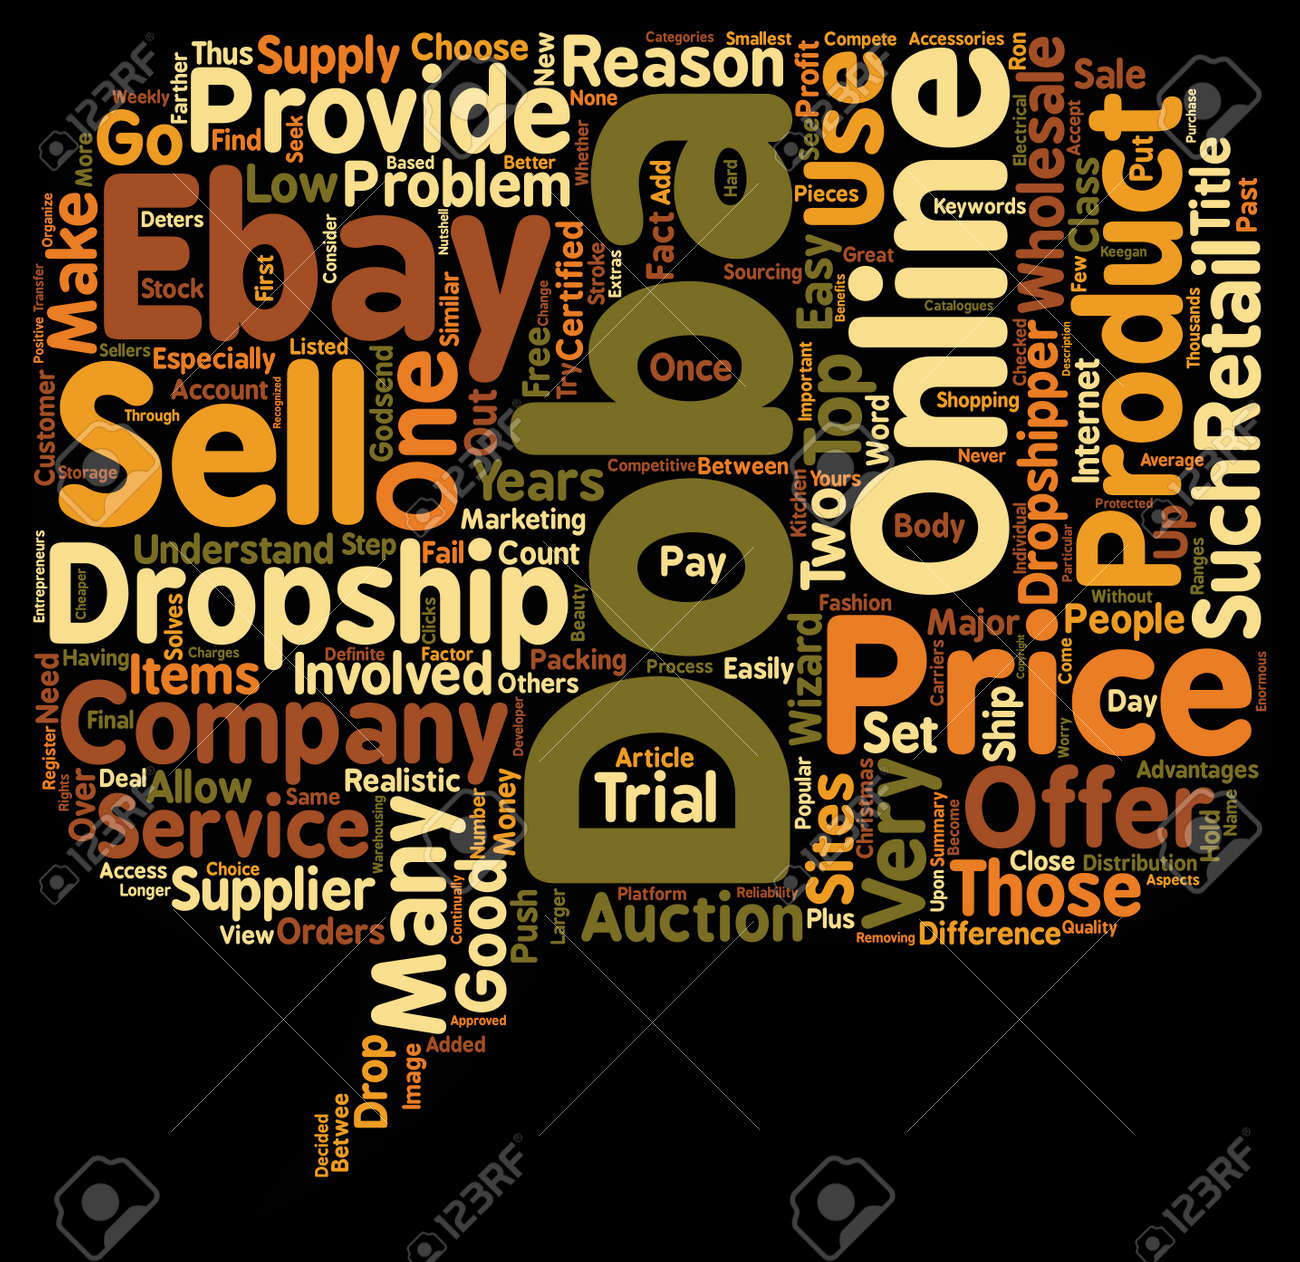 Doba Wholesale Supply Why This Drop Ship Company Is Popular text